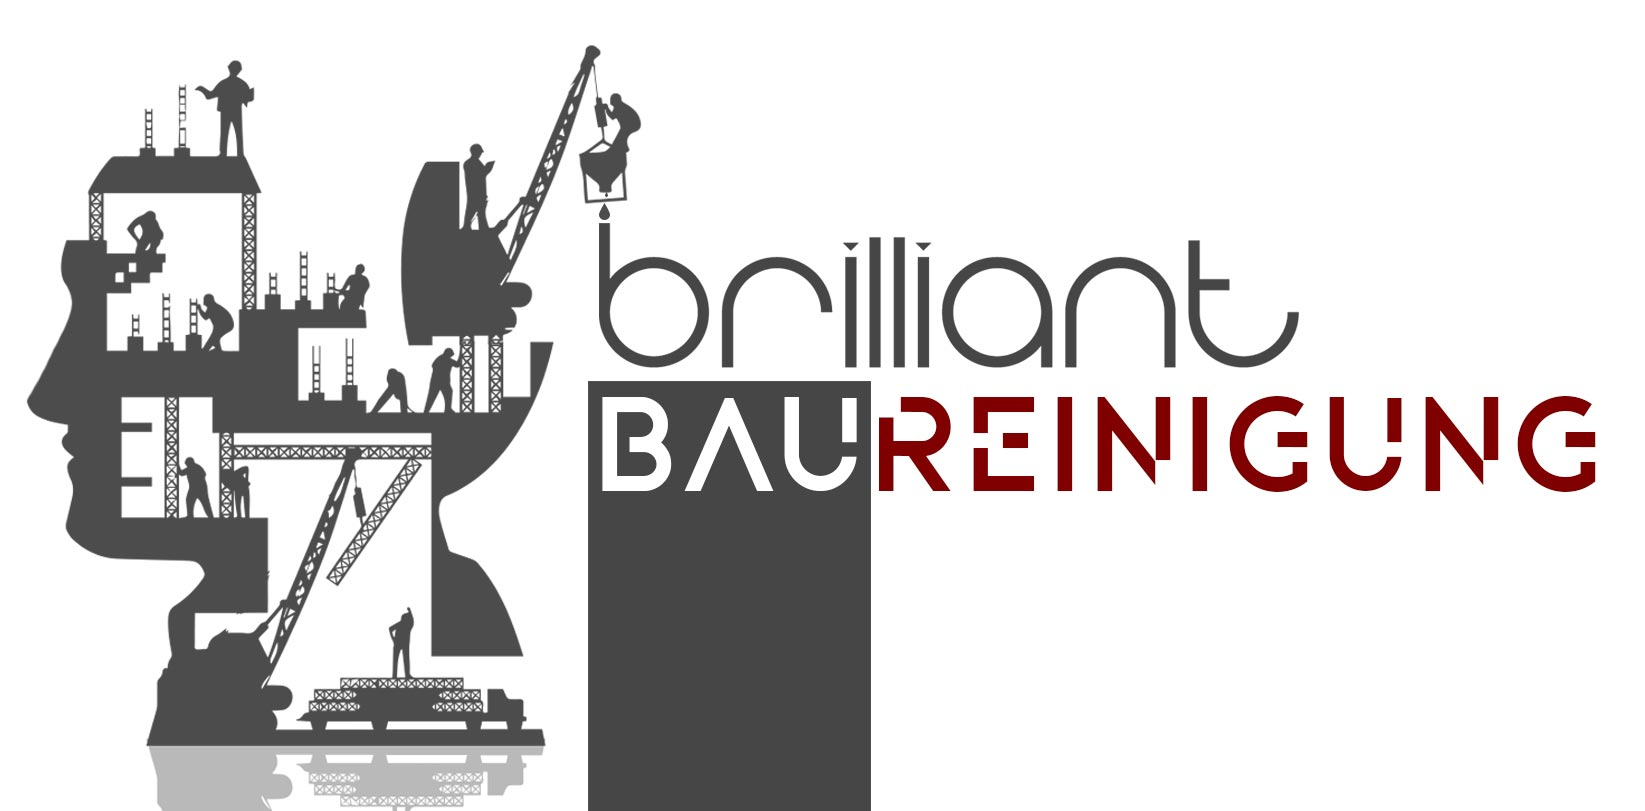 baureinigung-brilliant-clean-